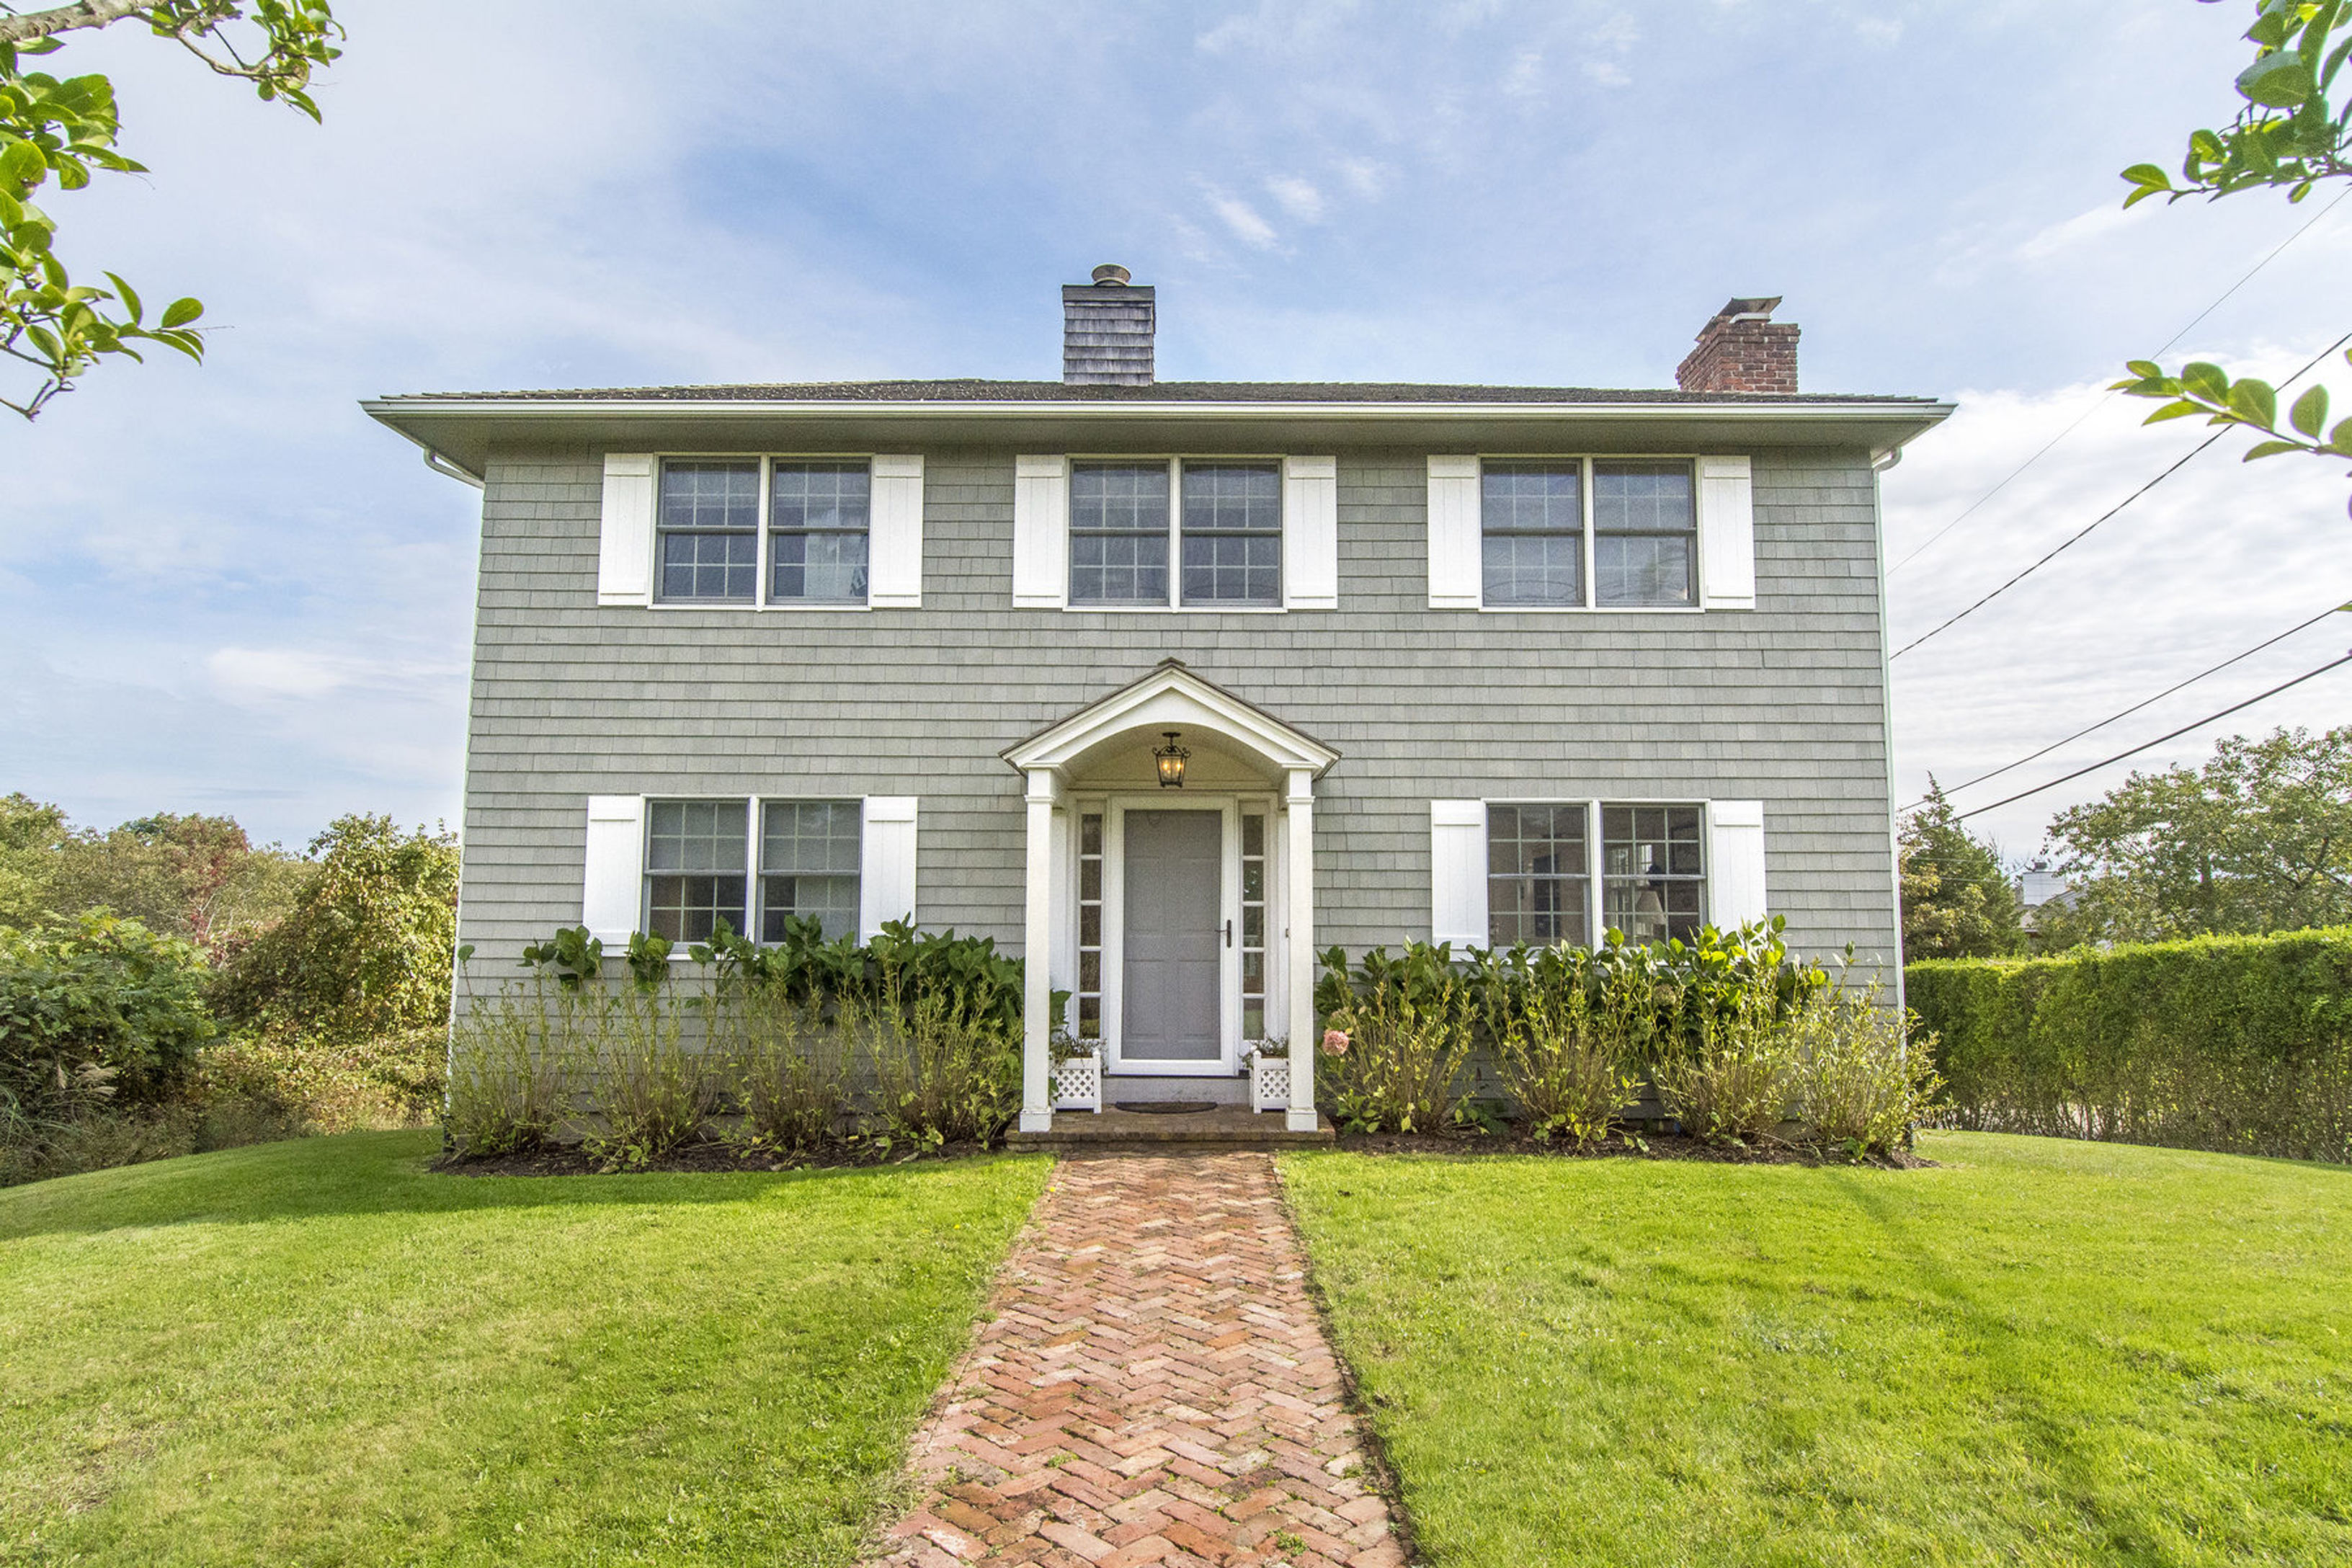 137 Bluff Rd - Amagansett Dunes, New York